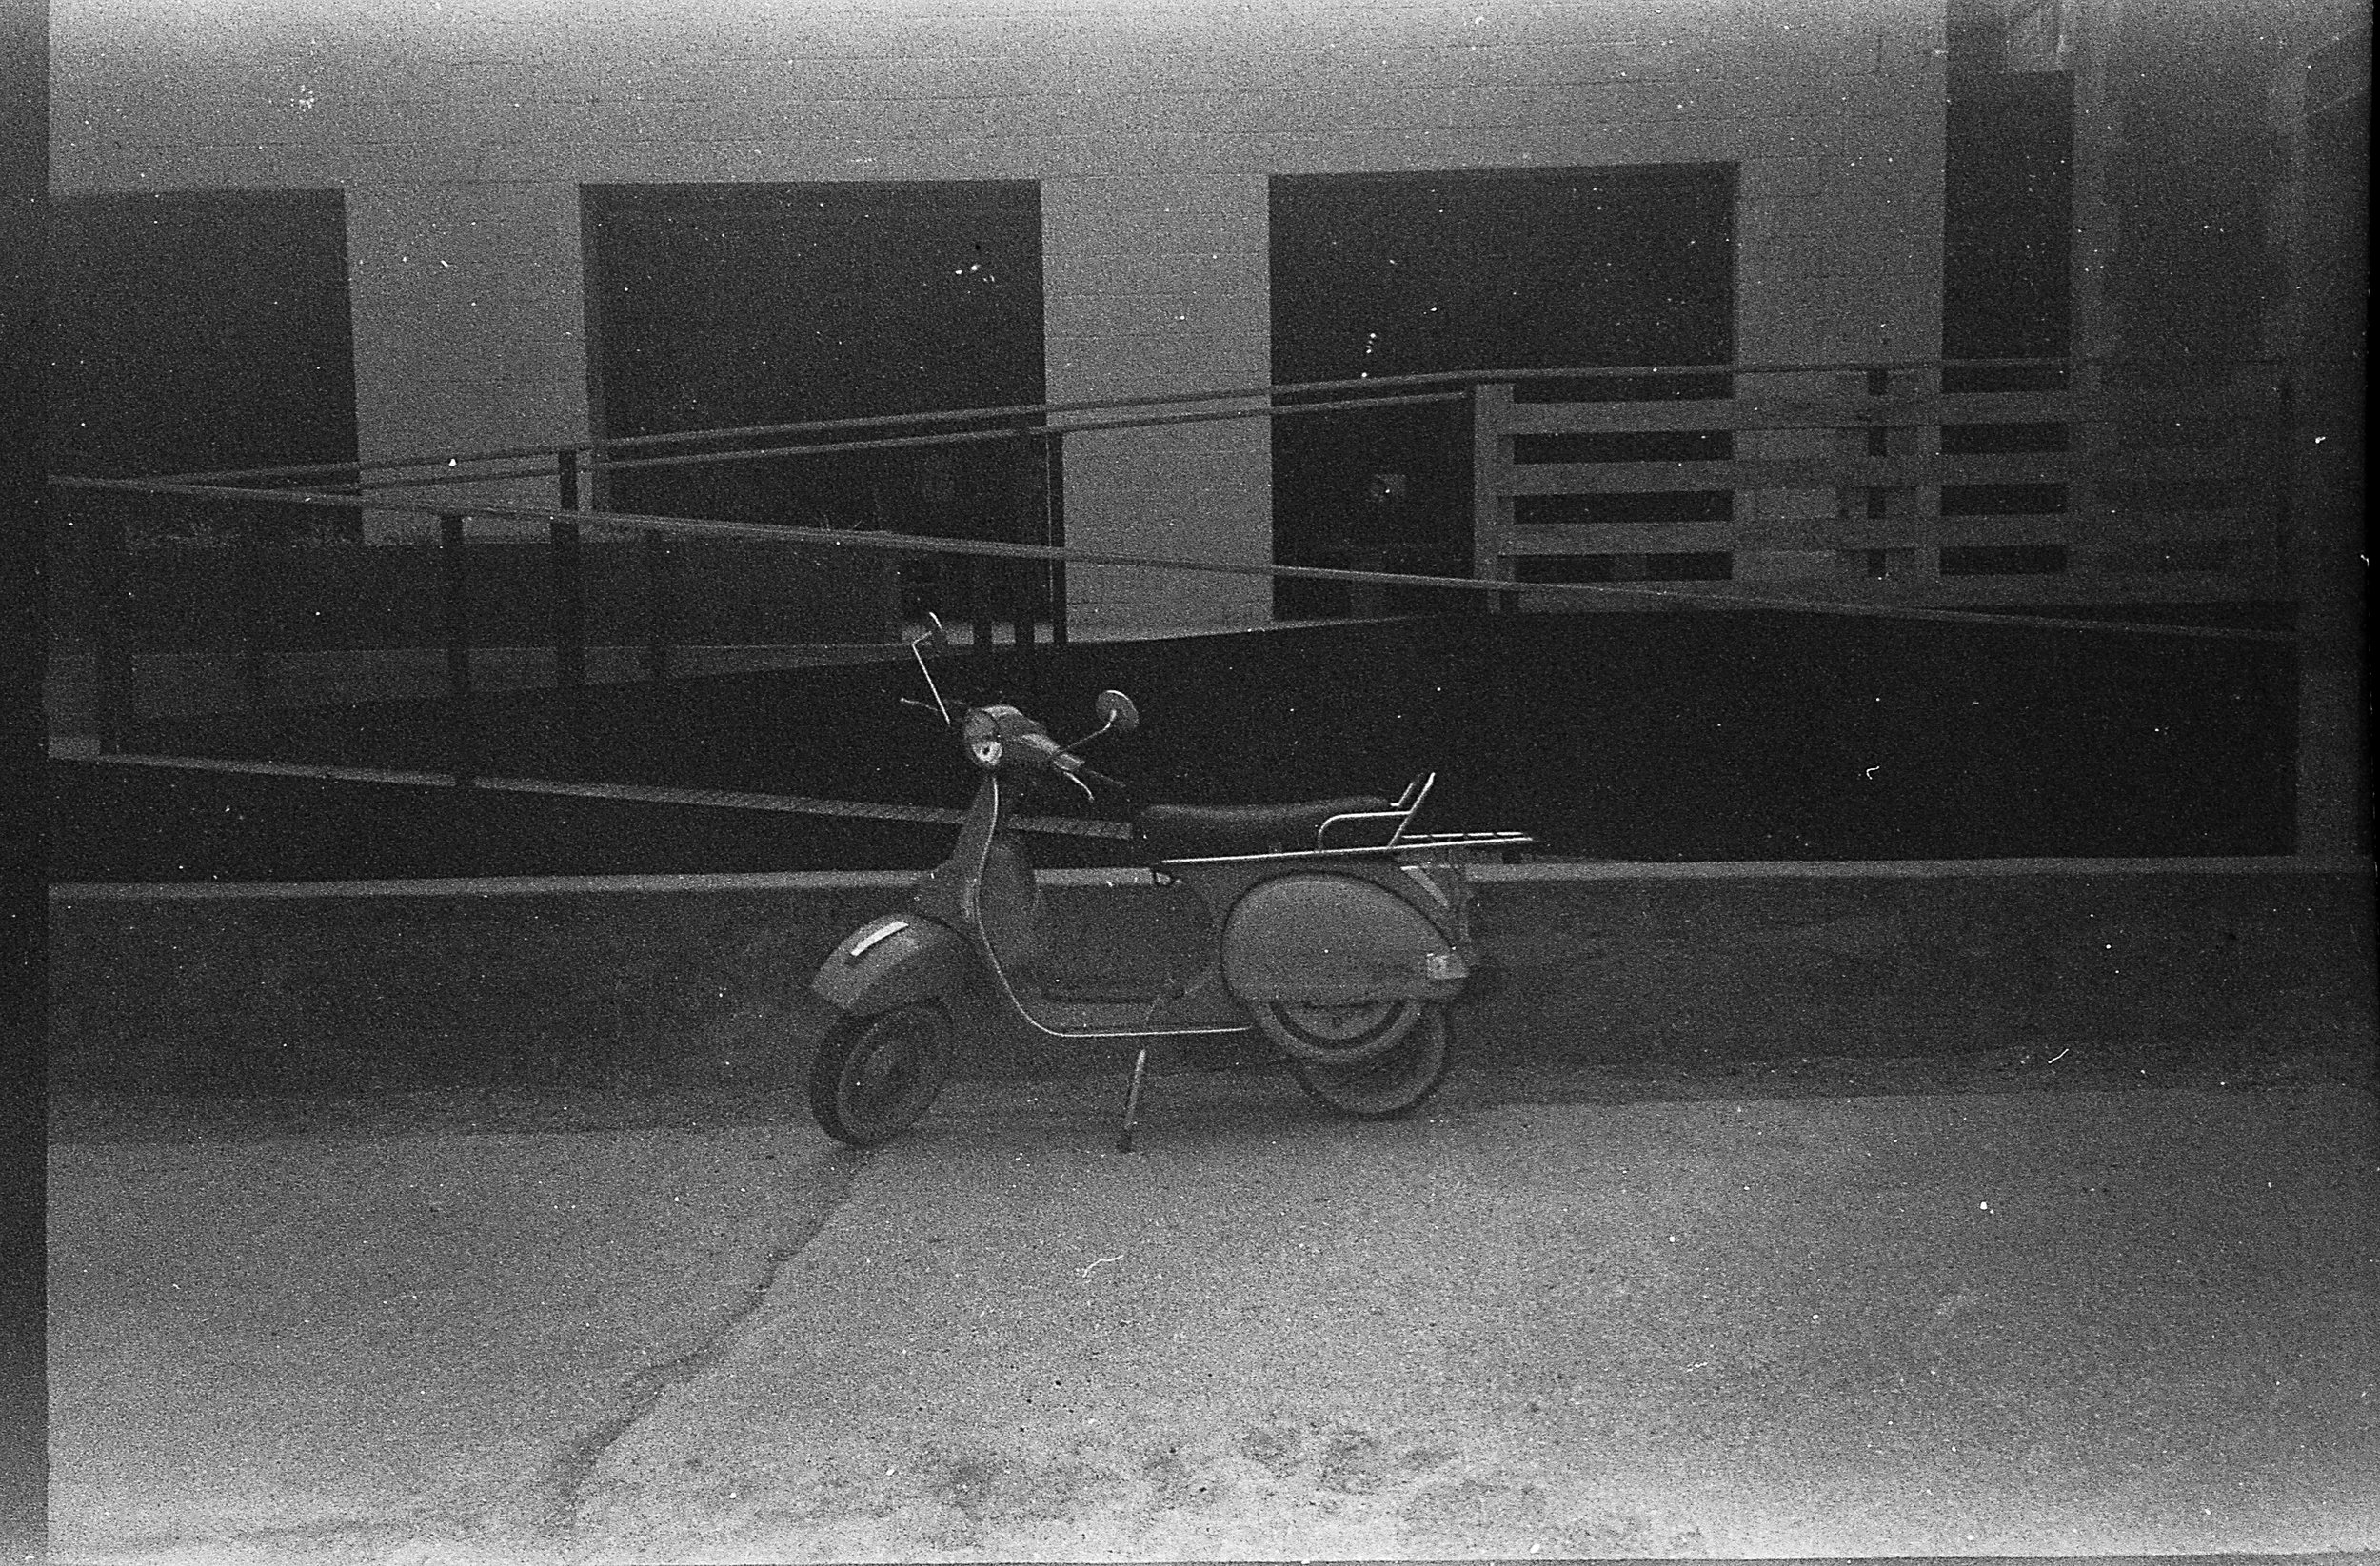 NikonL35AF Fresh Lomography Lady Gray developed with Anthology's Coffee from Detroit, MI.